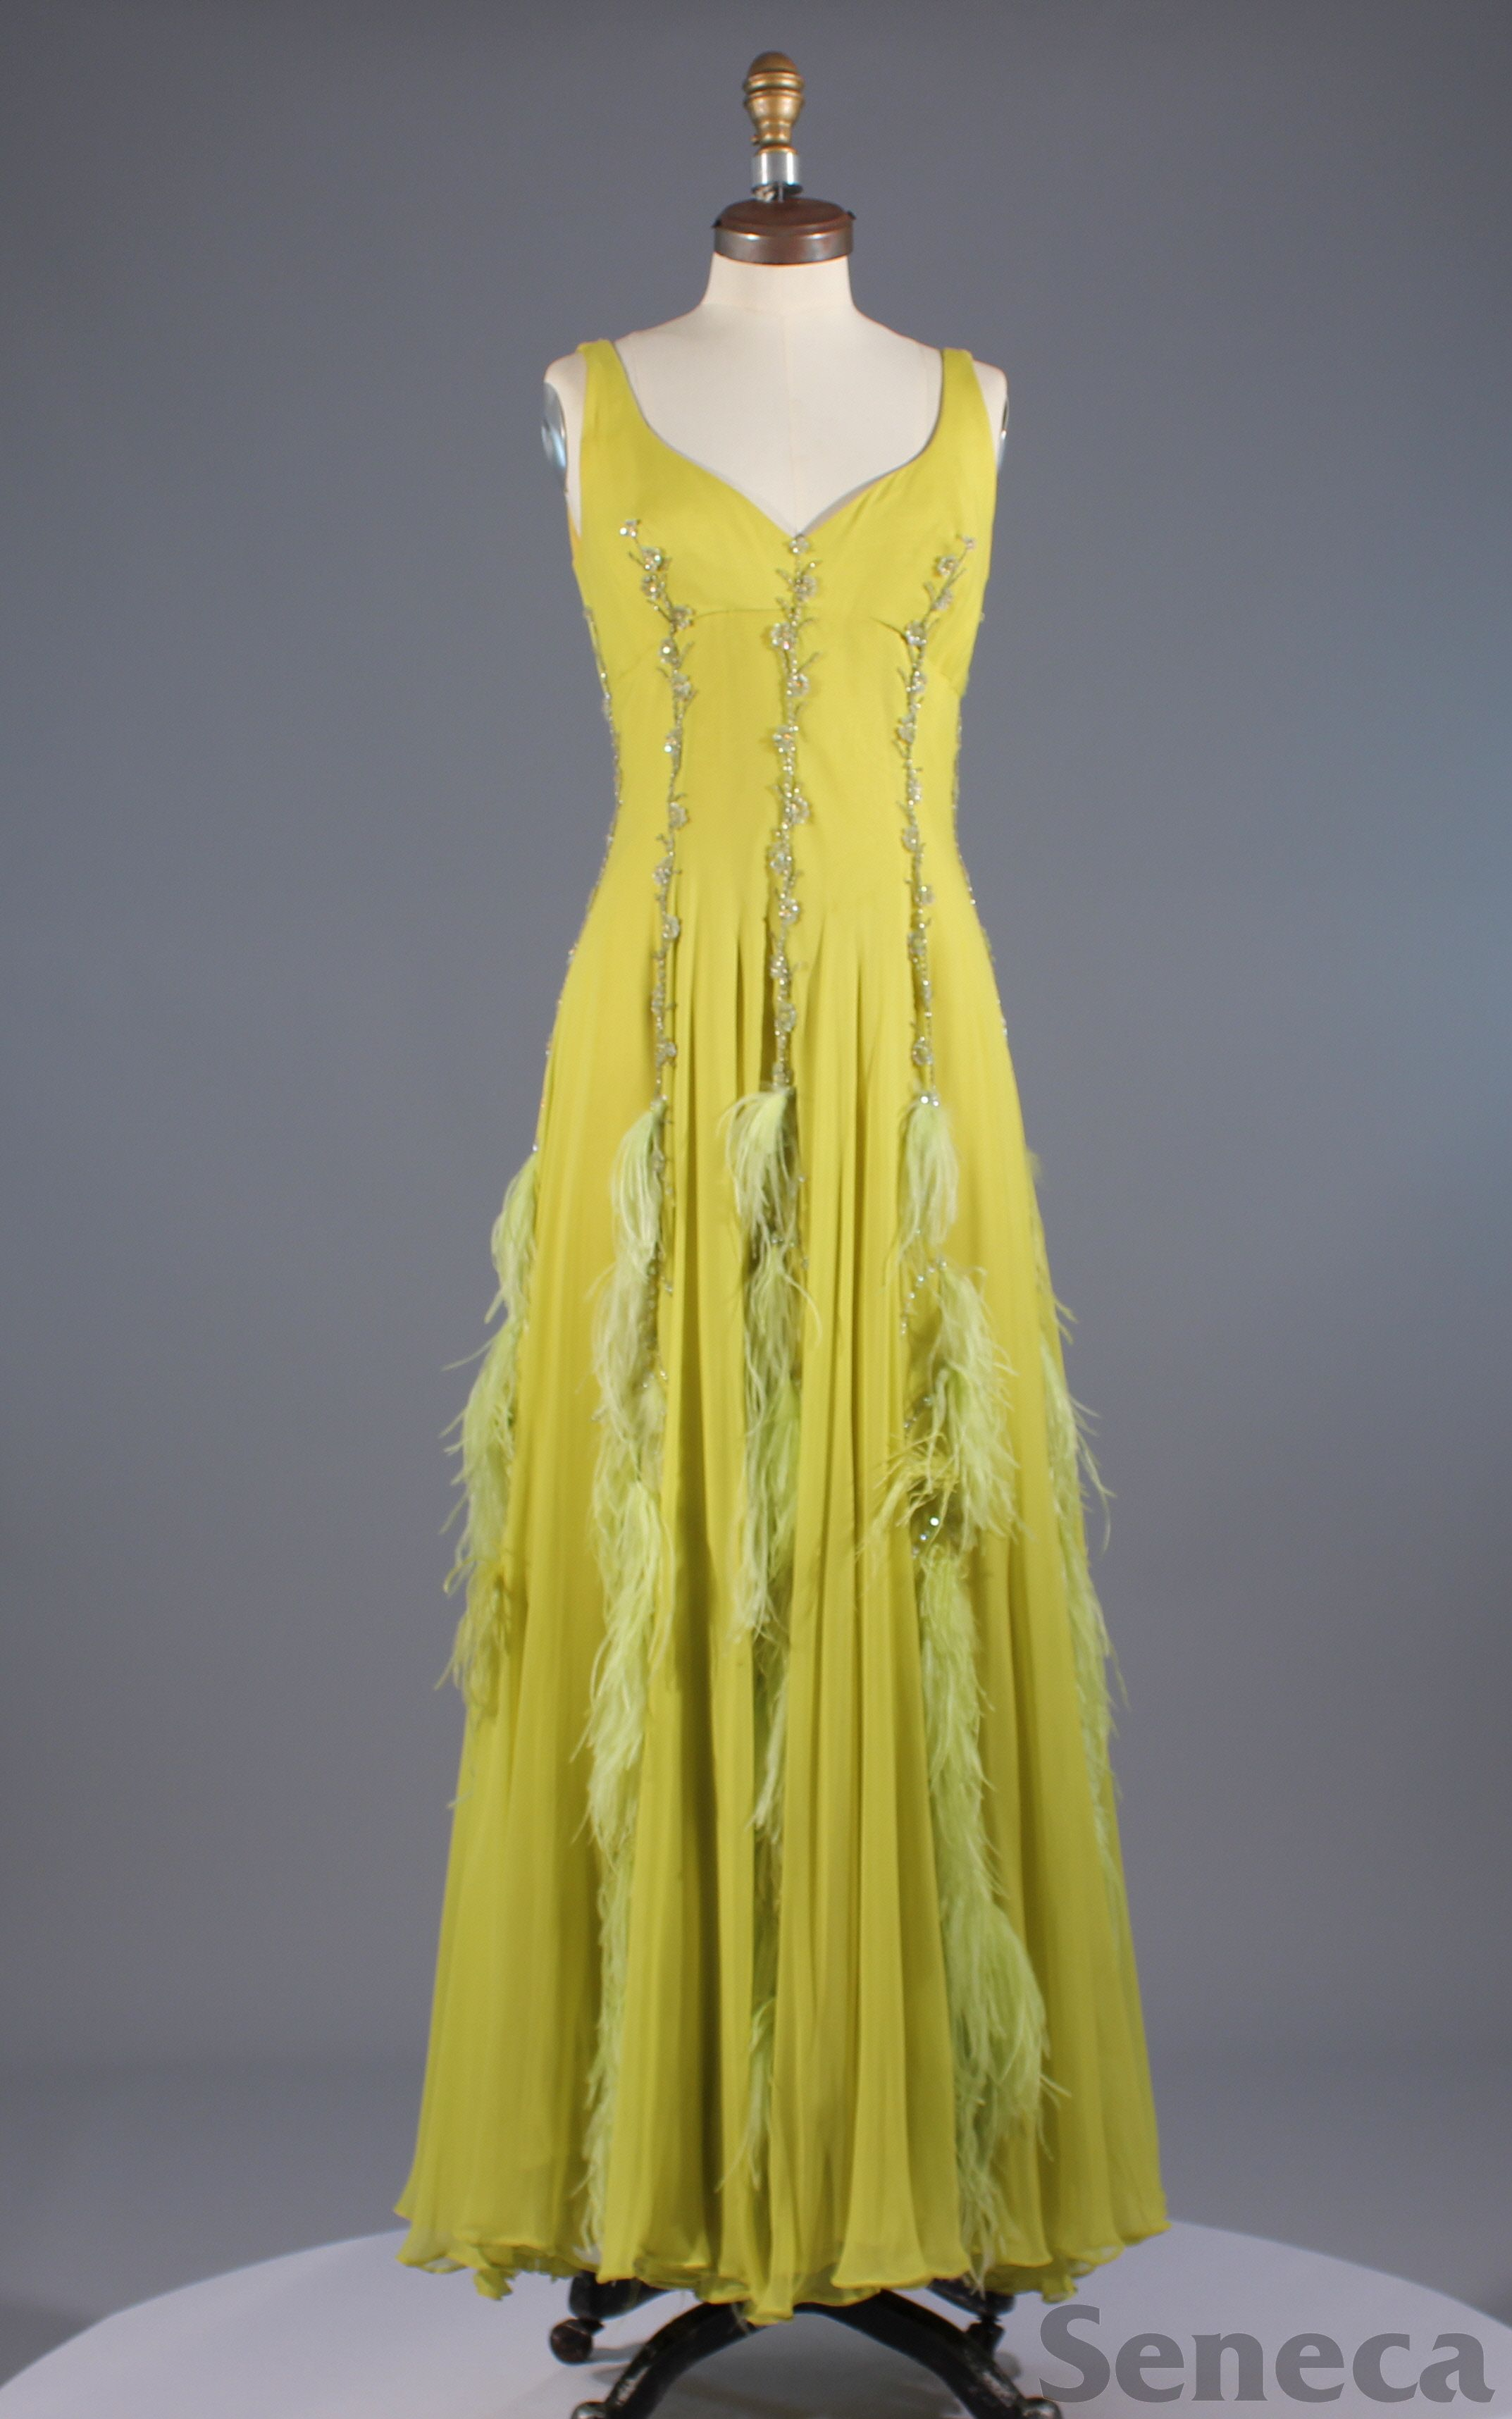 1960s gown with ostrich feathers | 60sー70s fashion 2 Clothing ...